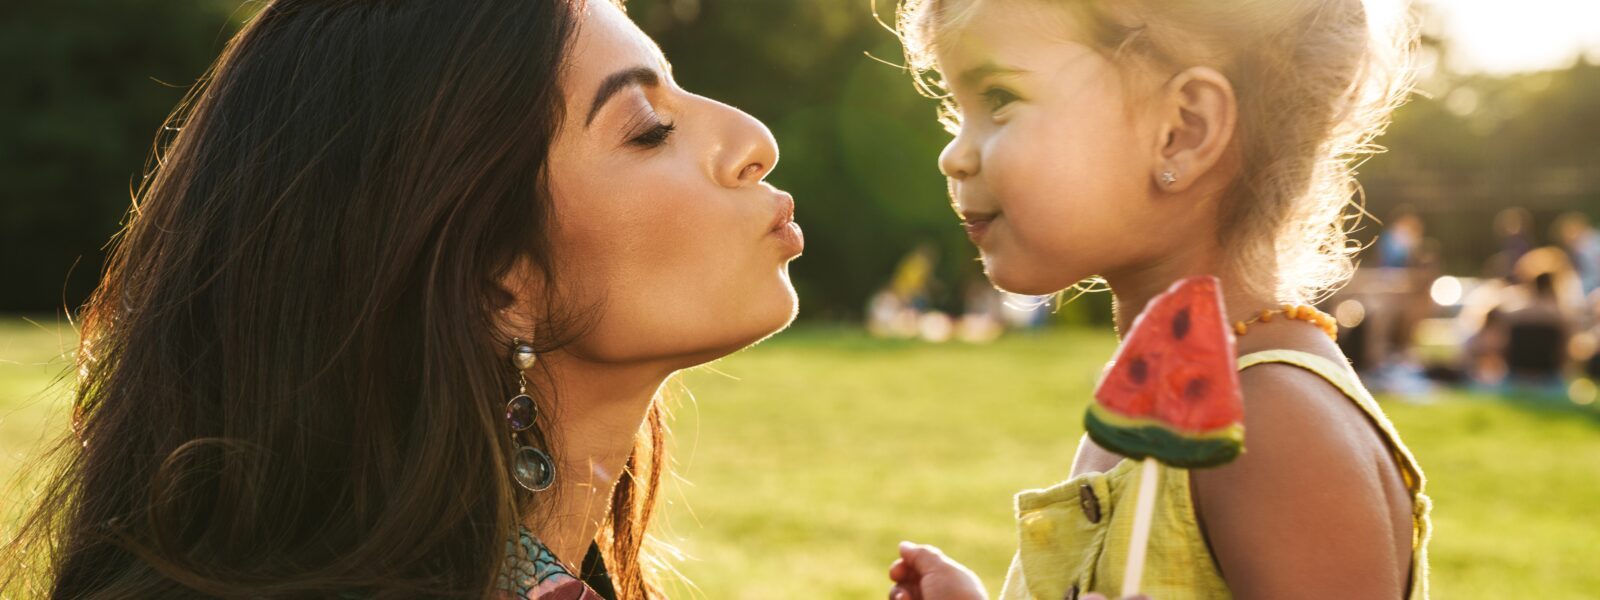 New TXICFW Study Published on Caregiver's Adverse Childhood Experiences: